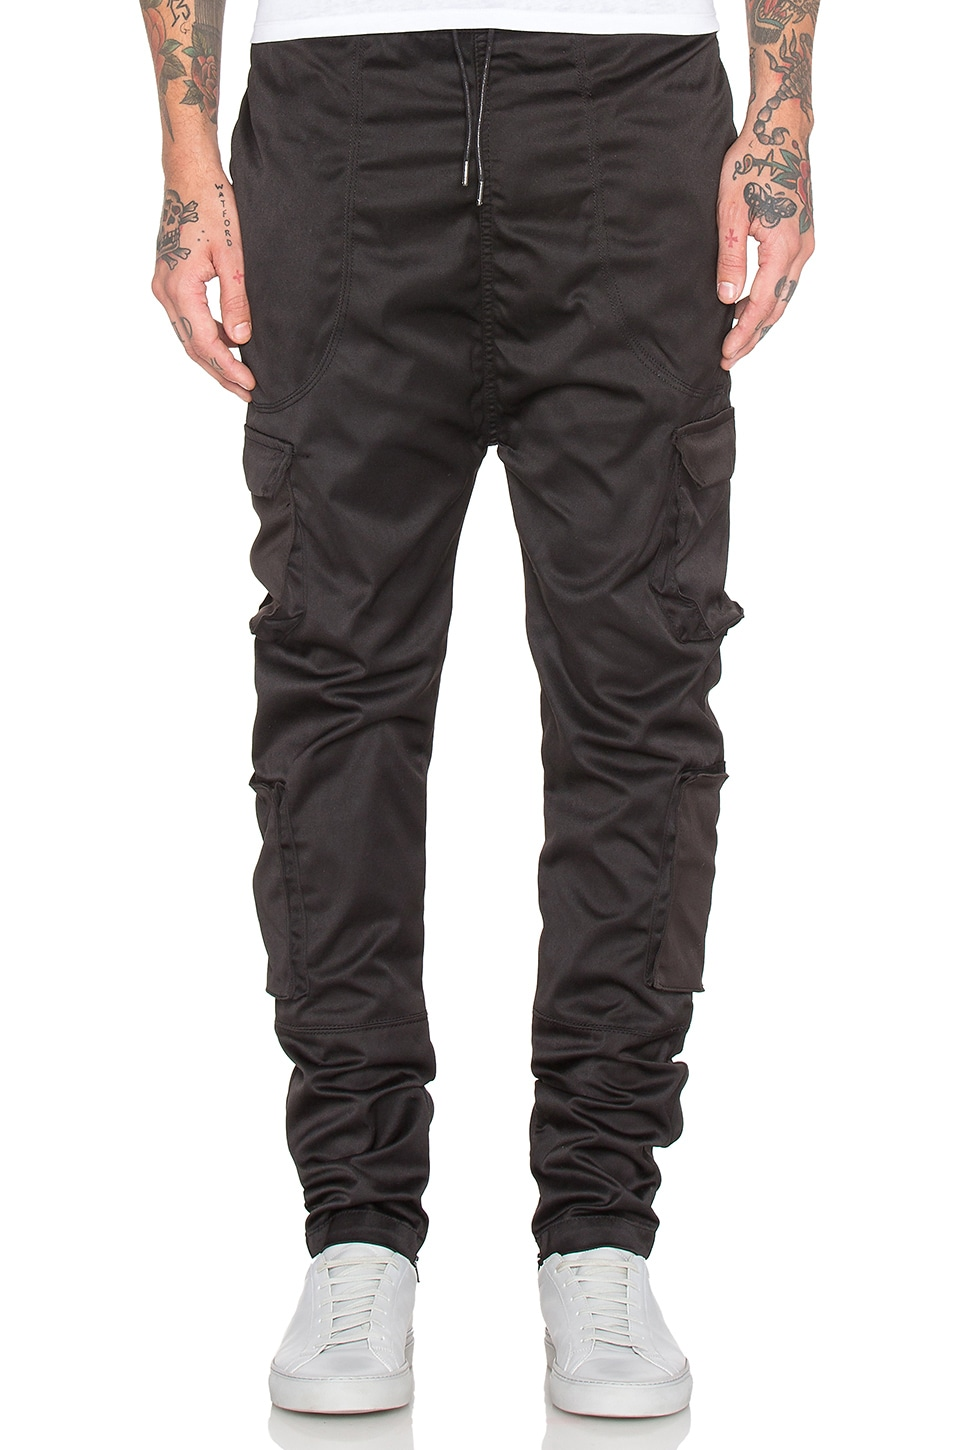 Zespy Militia Pant by I Love Ugly